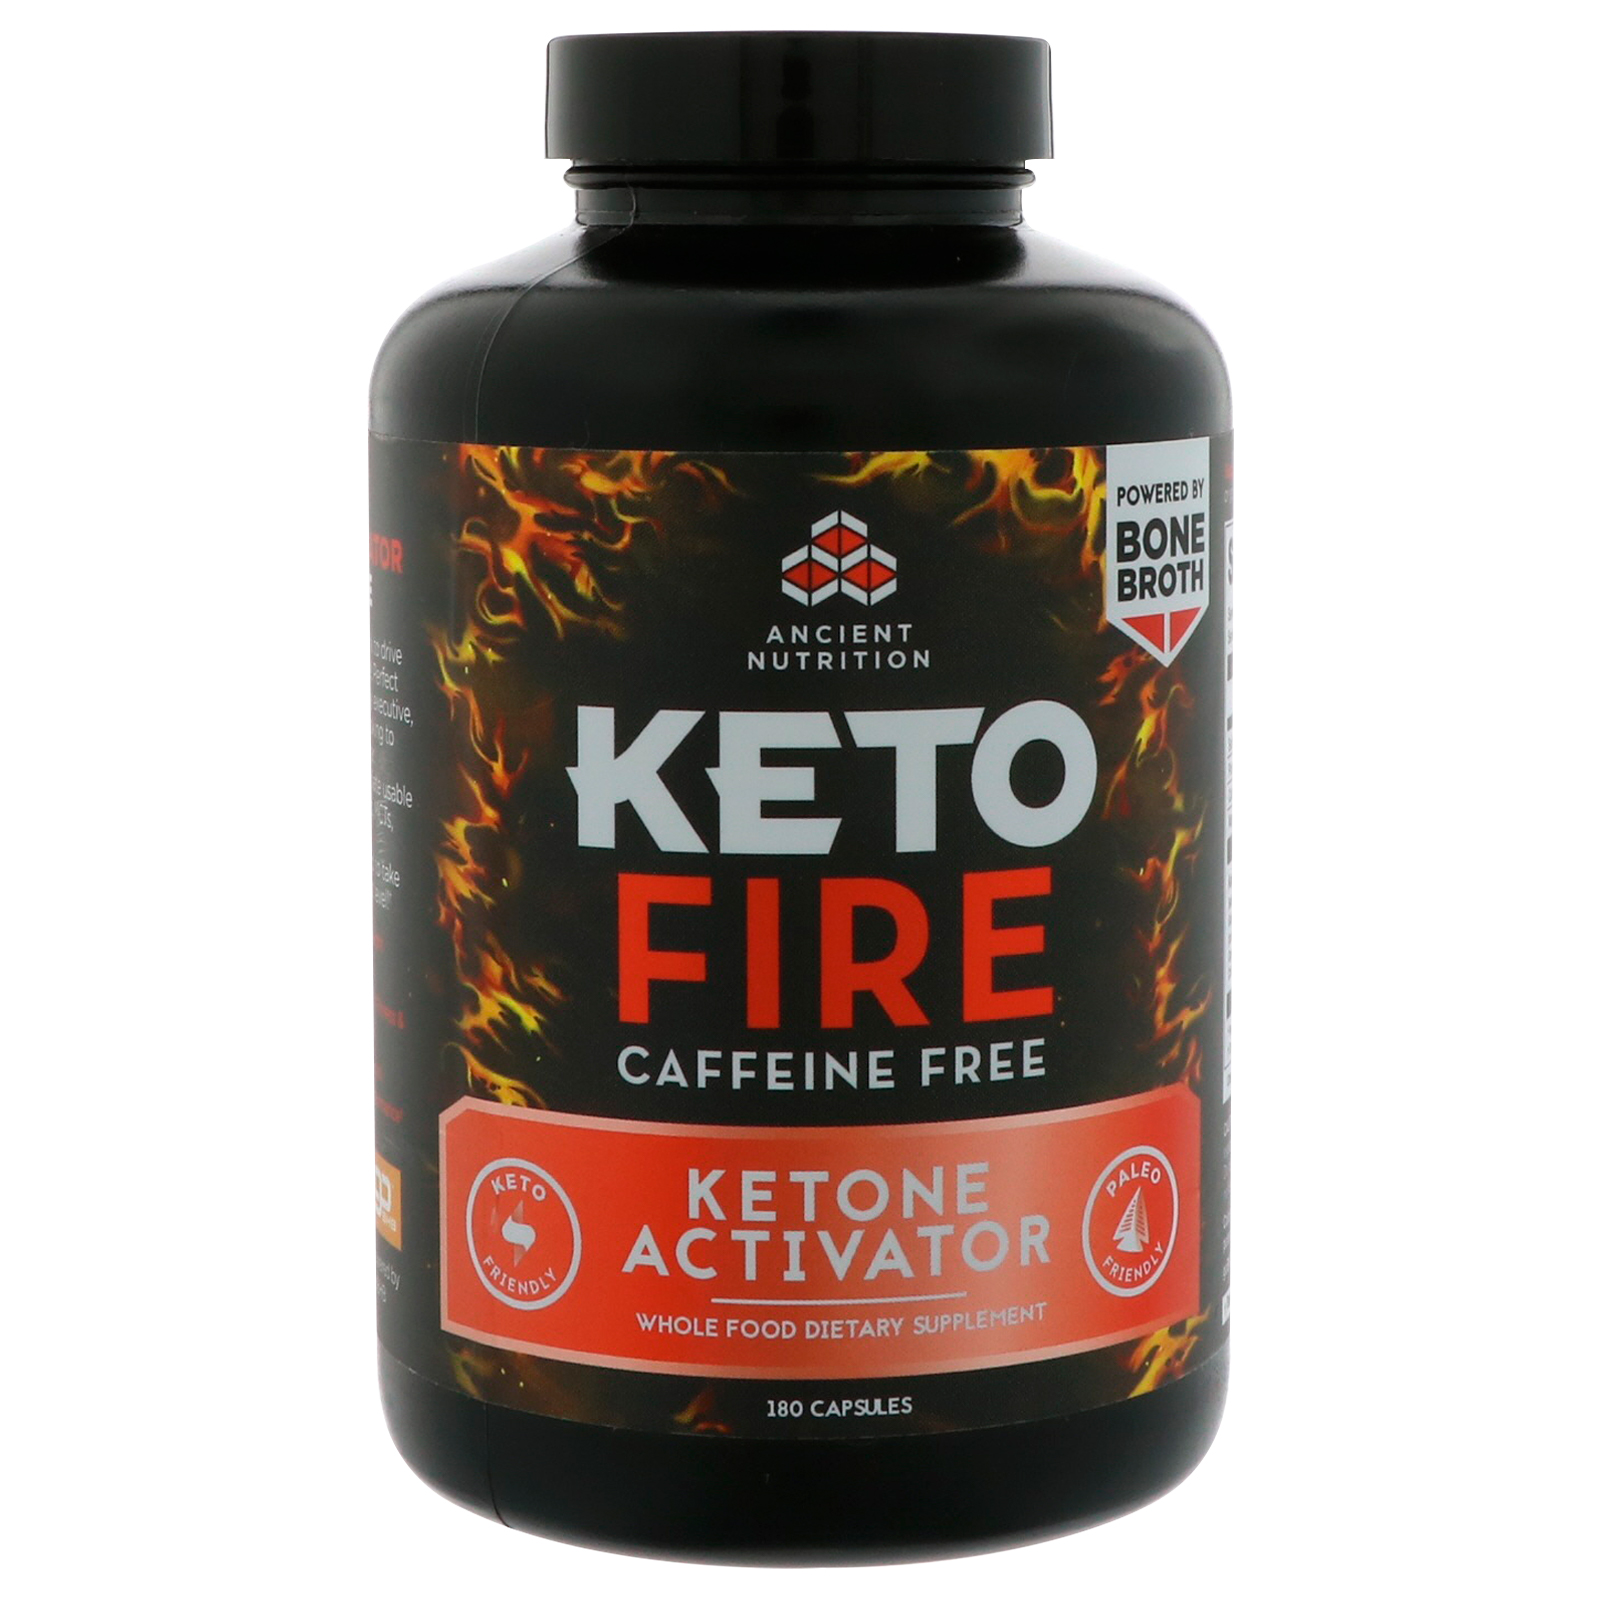 Dr axe ancient nutrition keto fire ketone activator for Dr axe fish oil